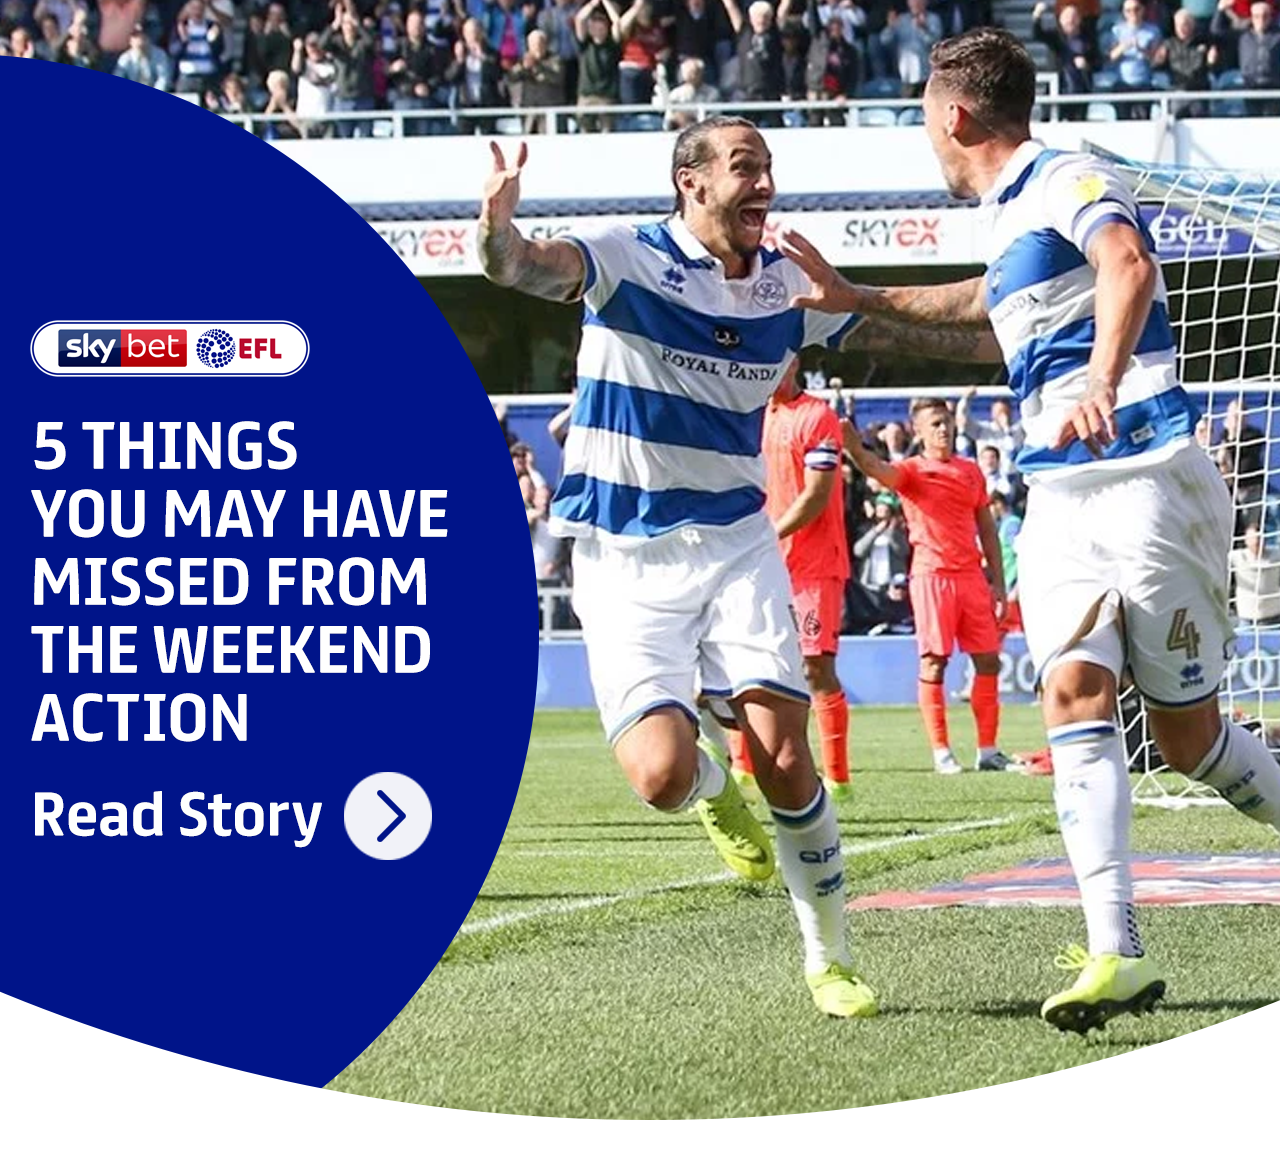 5 things you may have missed from the weekend action